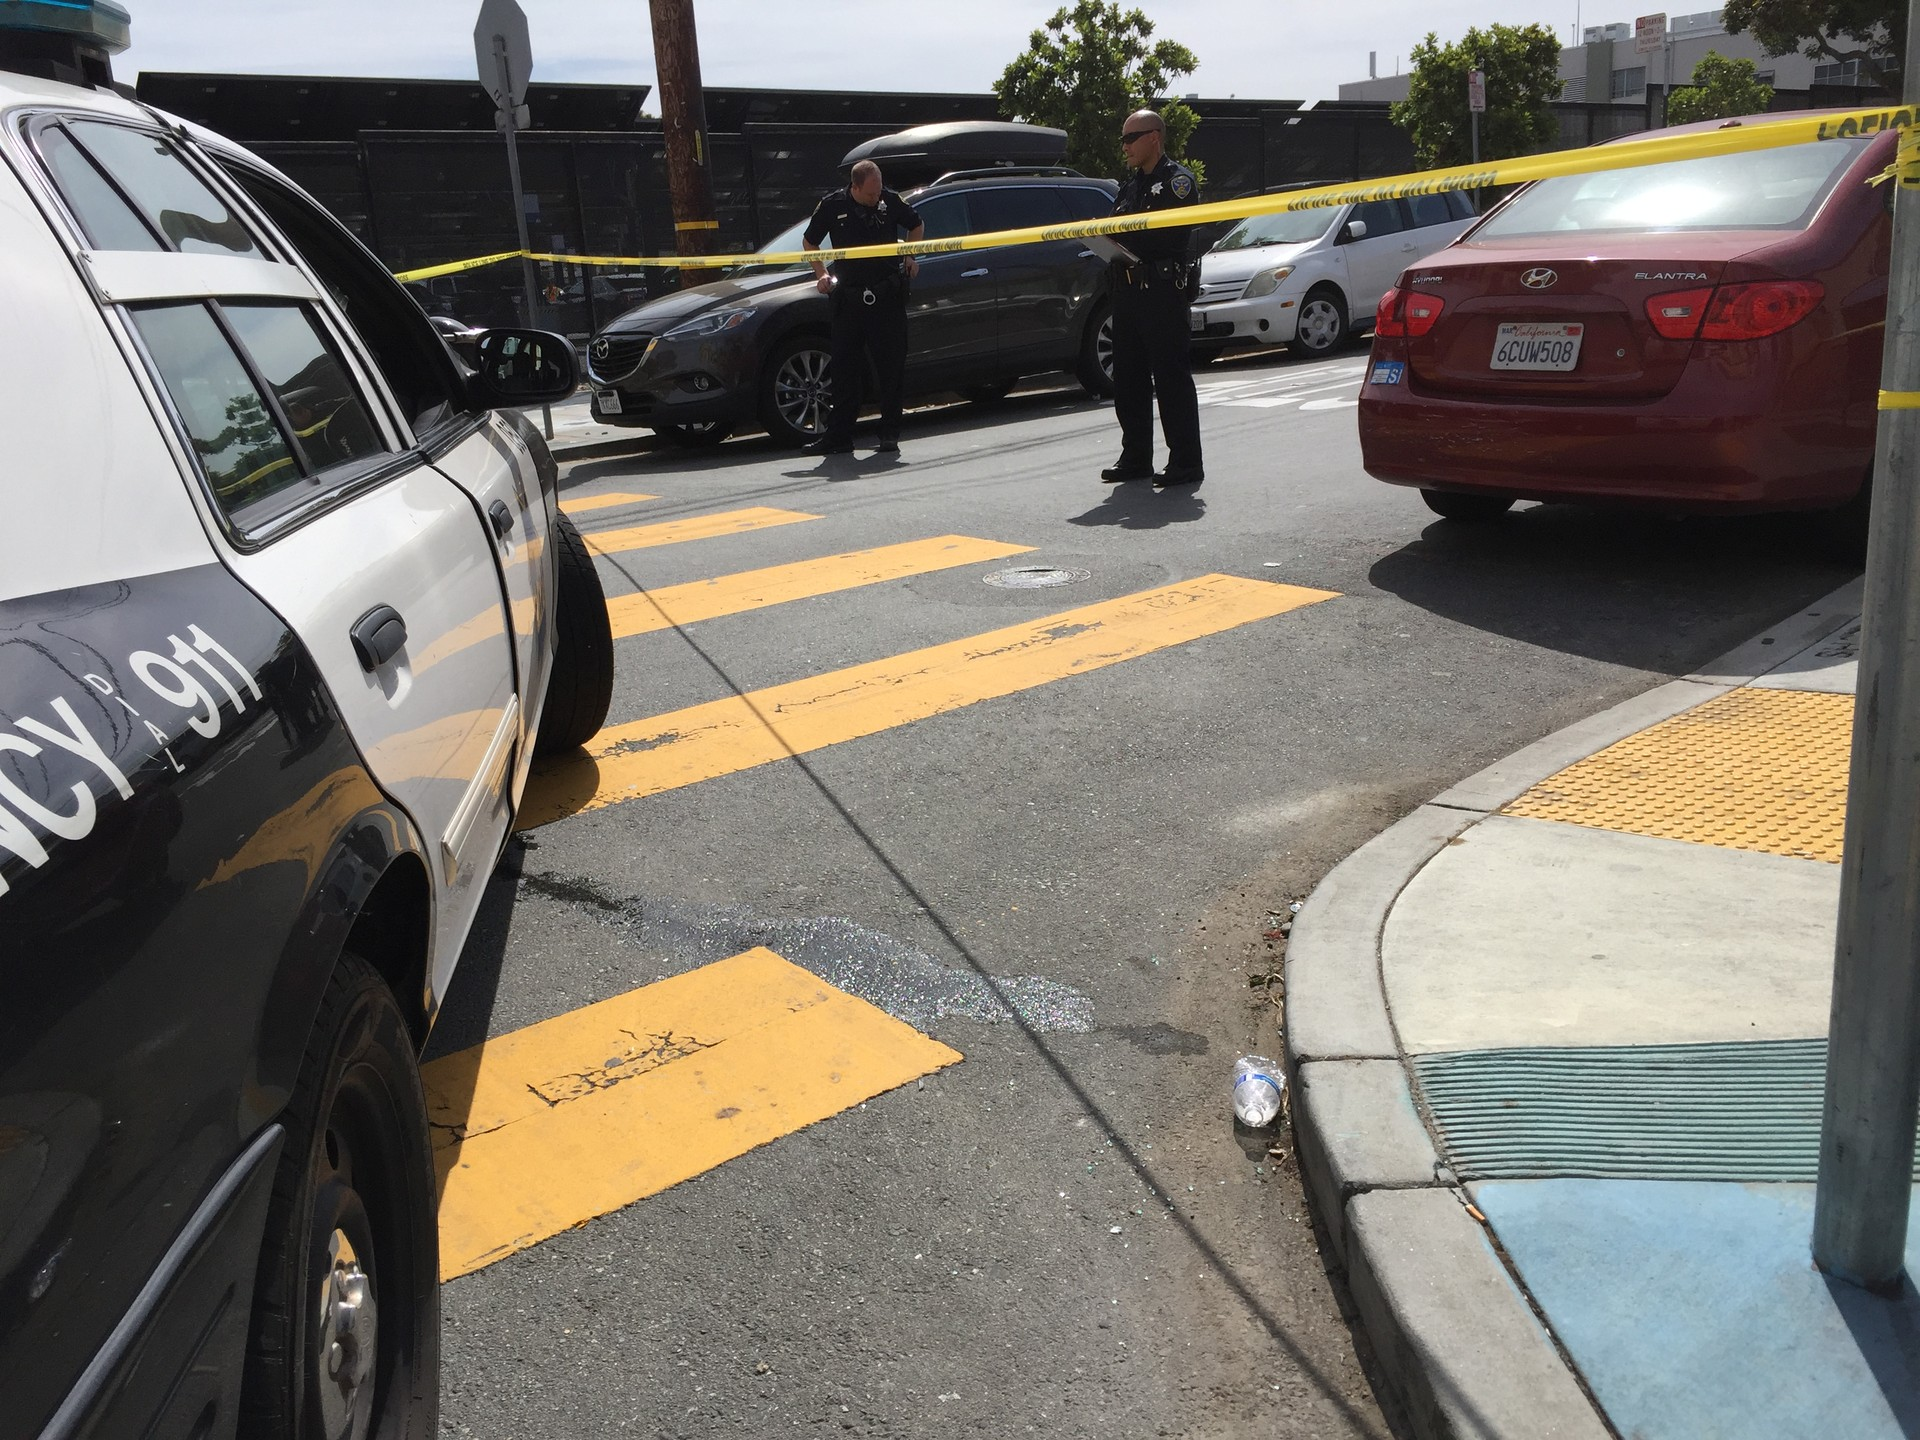 The scene of a fatal shooting by two San Francisco police officers Thursday, April 4, from 18th and Shotwell streets.